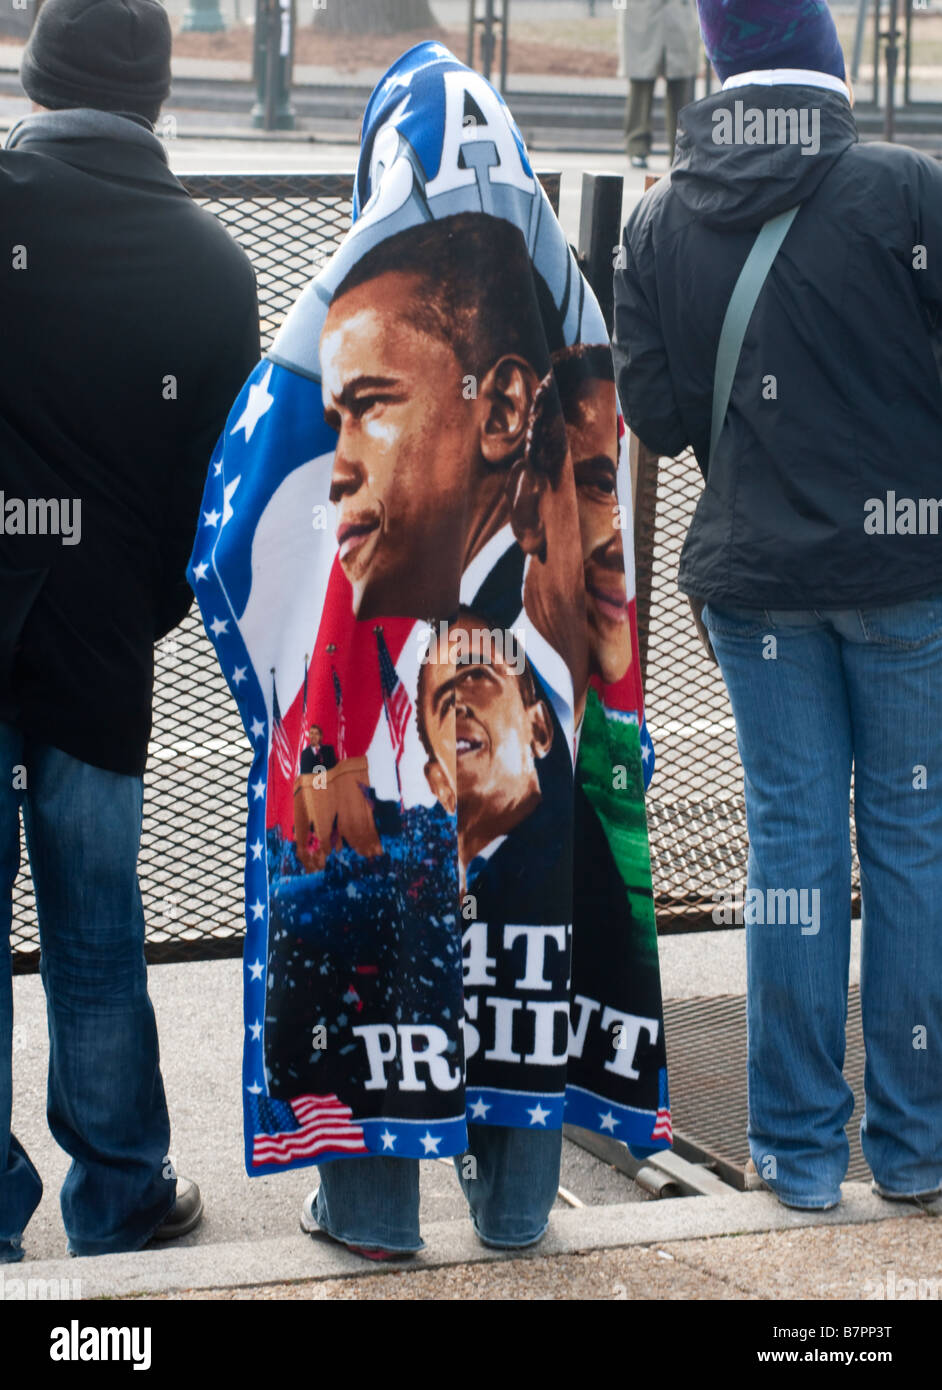 A supporter attending the inauguration of Barack Obama keeps warm in a souvenir blanket bearing his image. - Stock Image